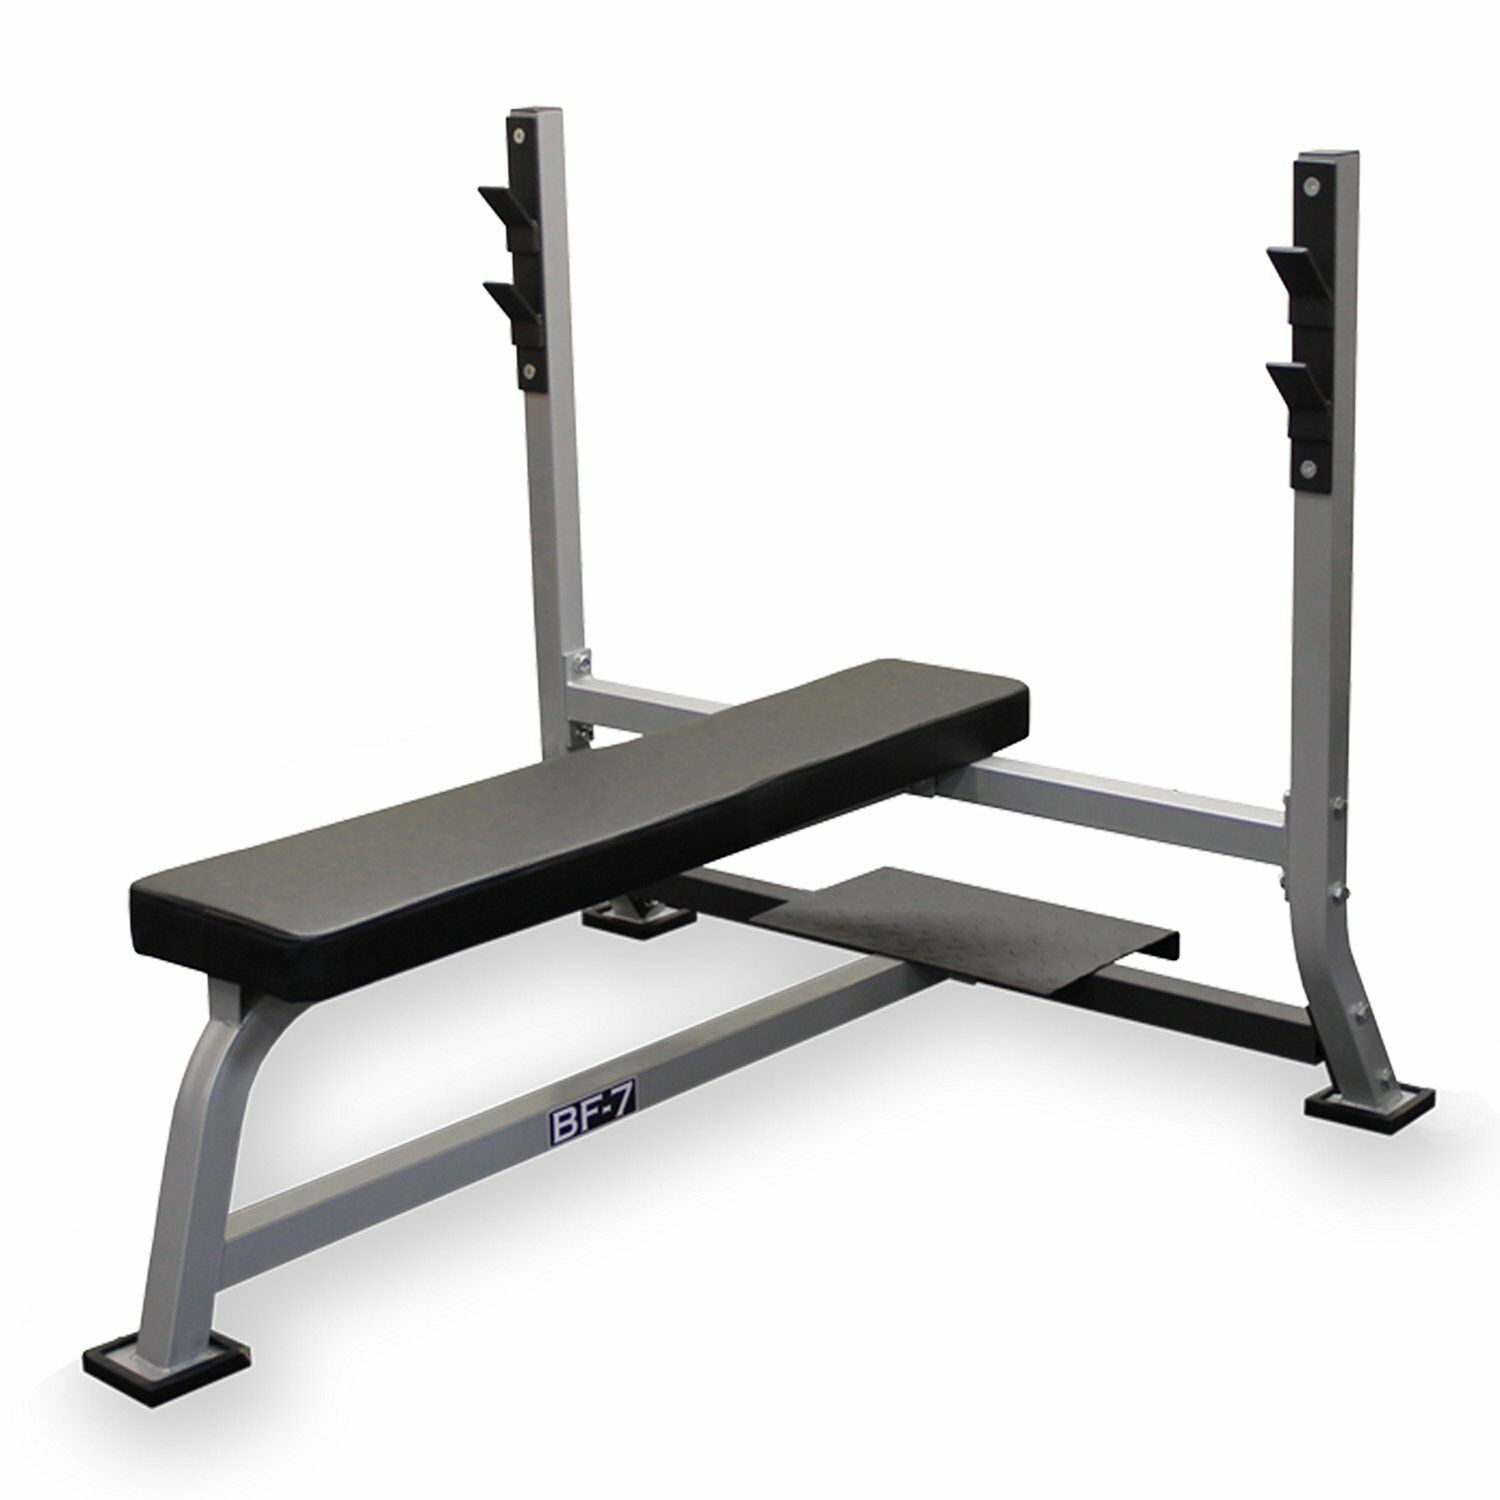 and the whats bench comparison olympic difference standard bars benches between what a weight contrast s